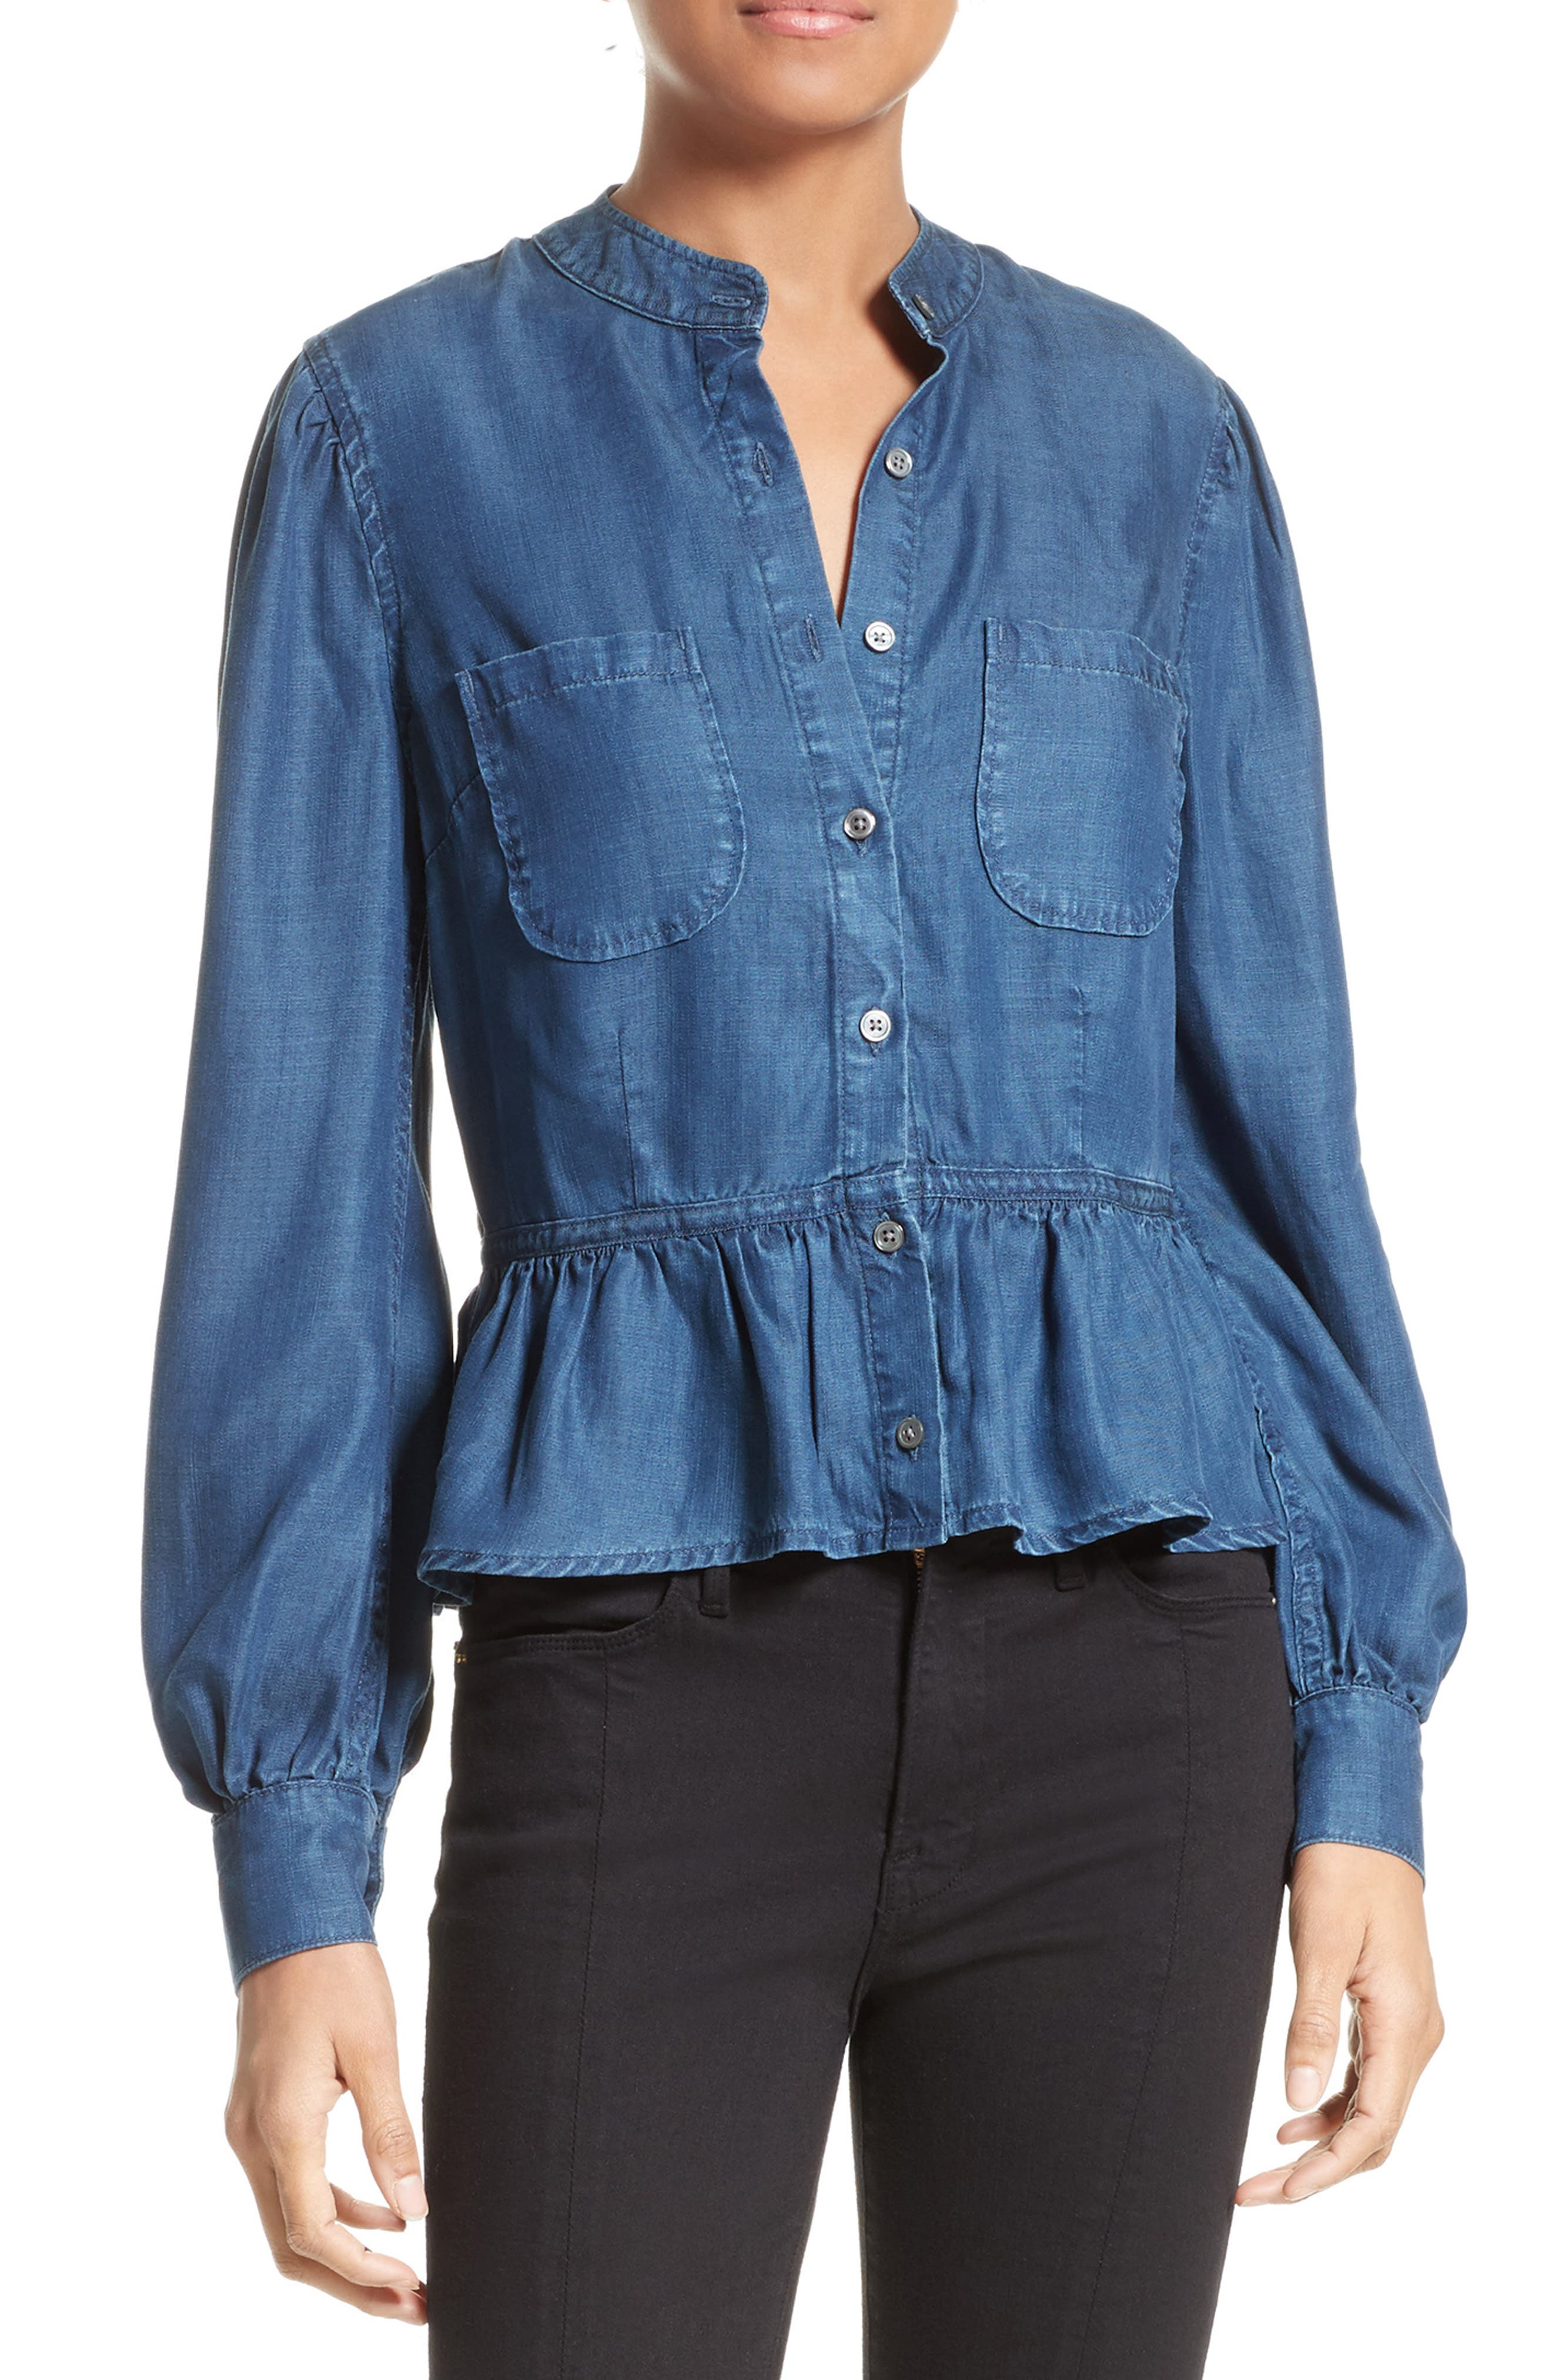 Alternate Image 1 Selected - FRAME Chambray Peplum Top (Nordstrom Exclusive)